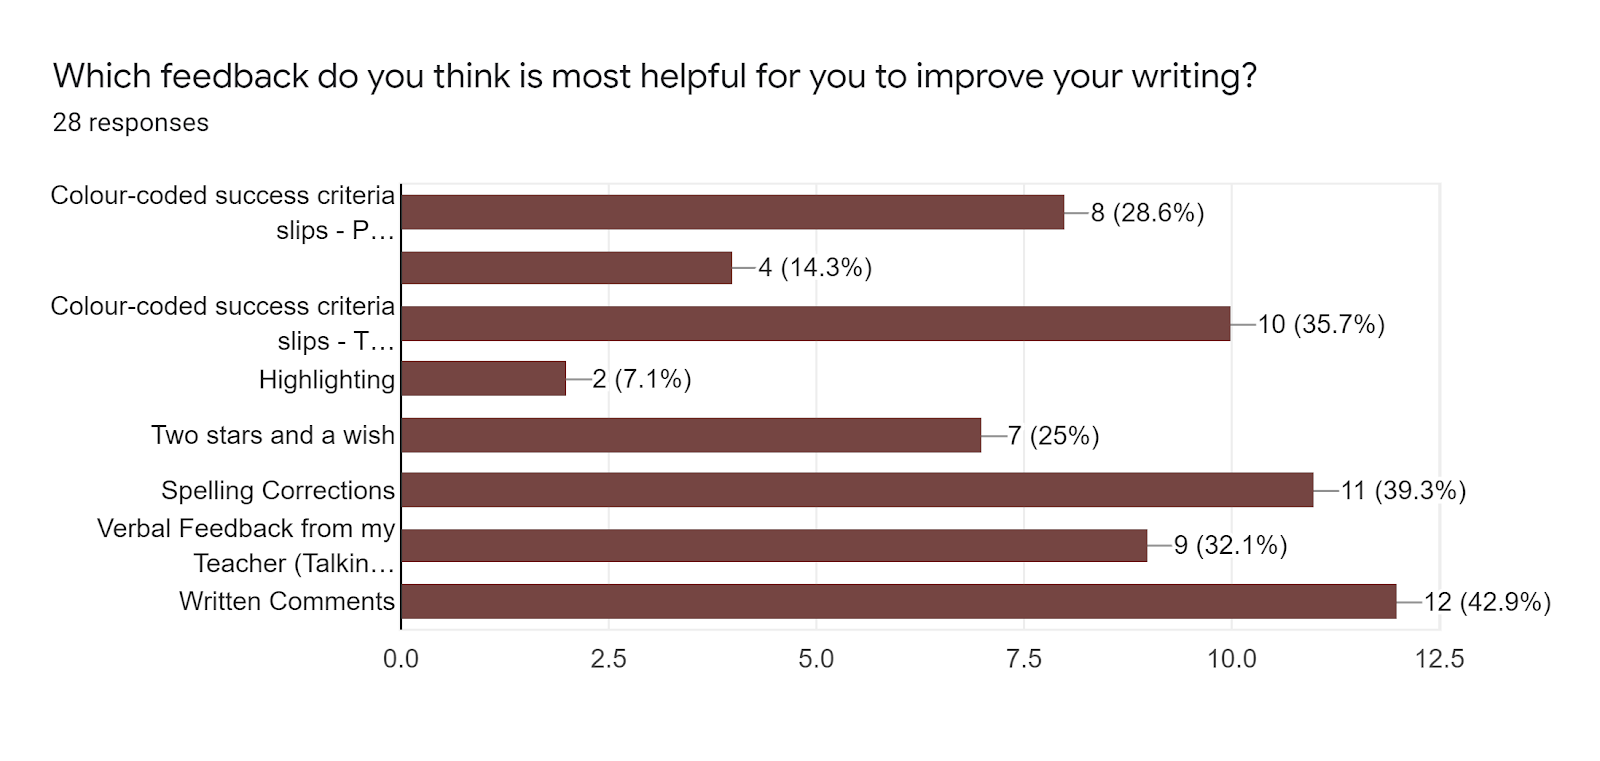 Forms response chart. Question title: Which feedback do you think is most helpful for you to improve your writing?. Number of responses: 28 responses.